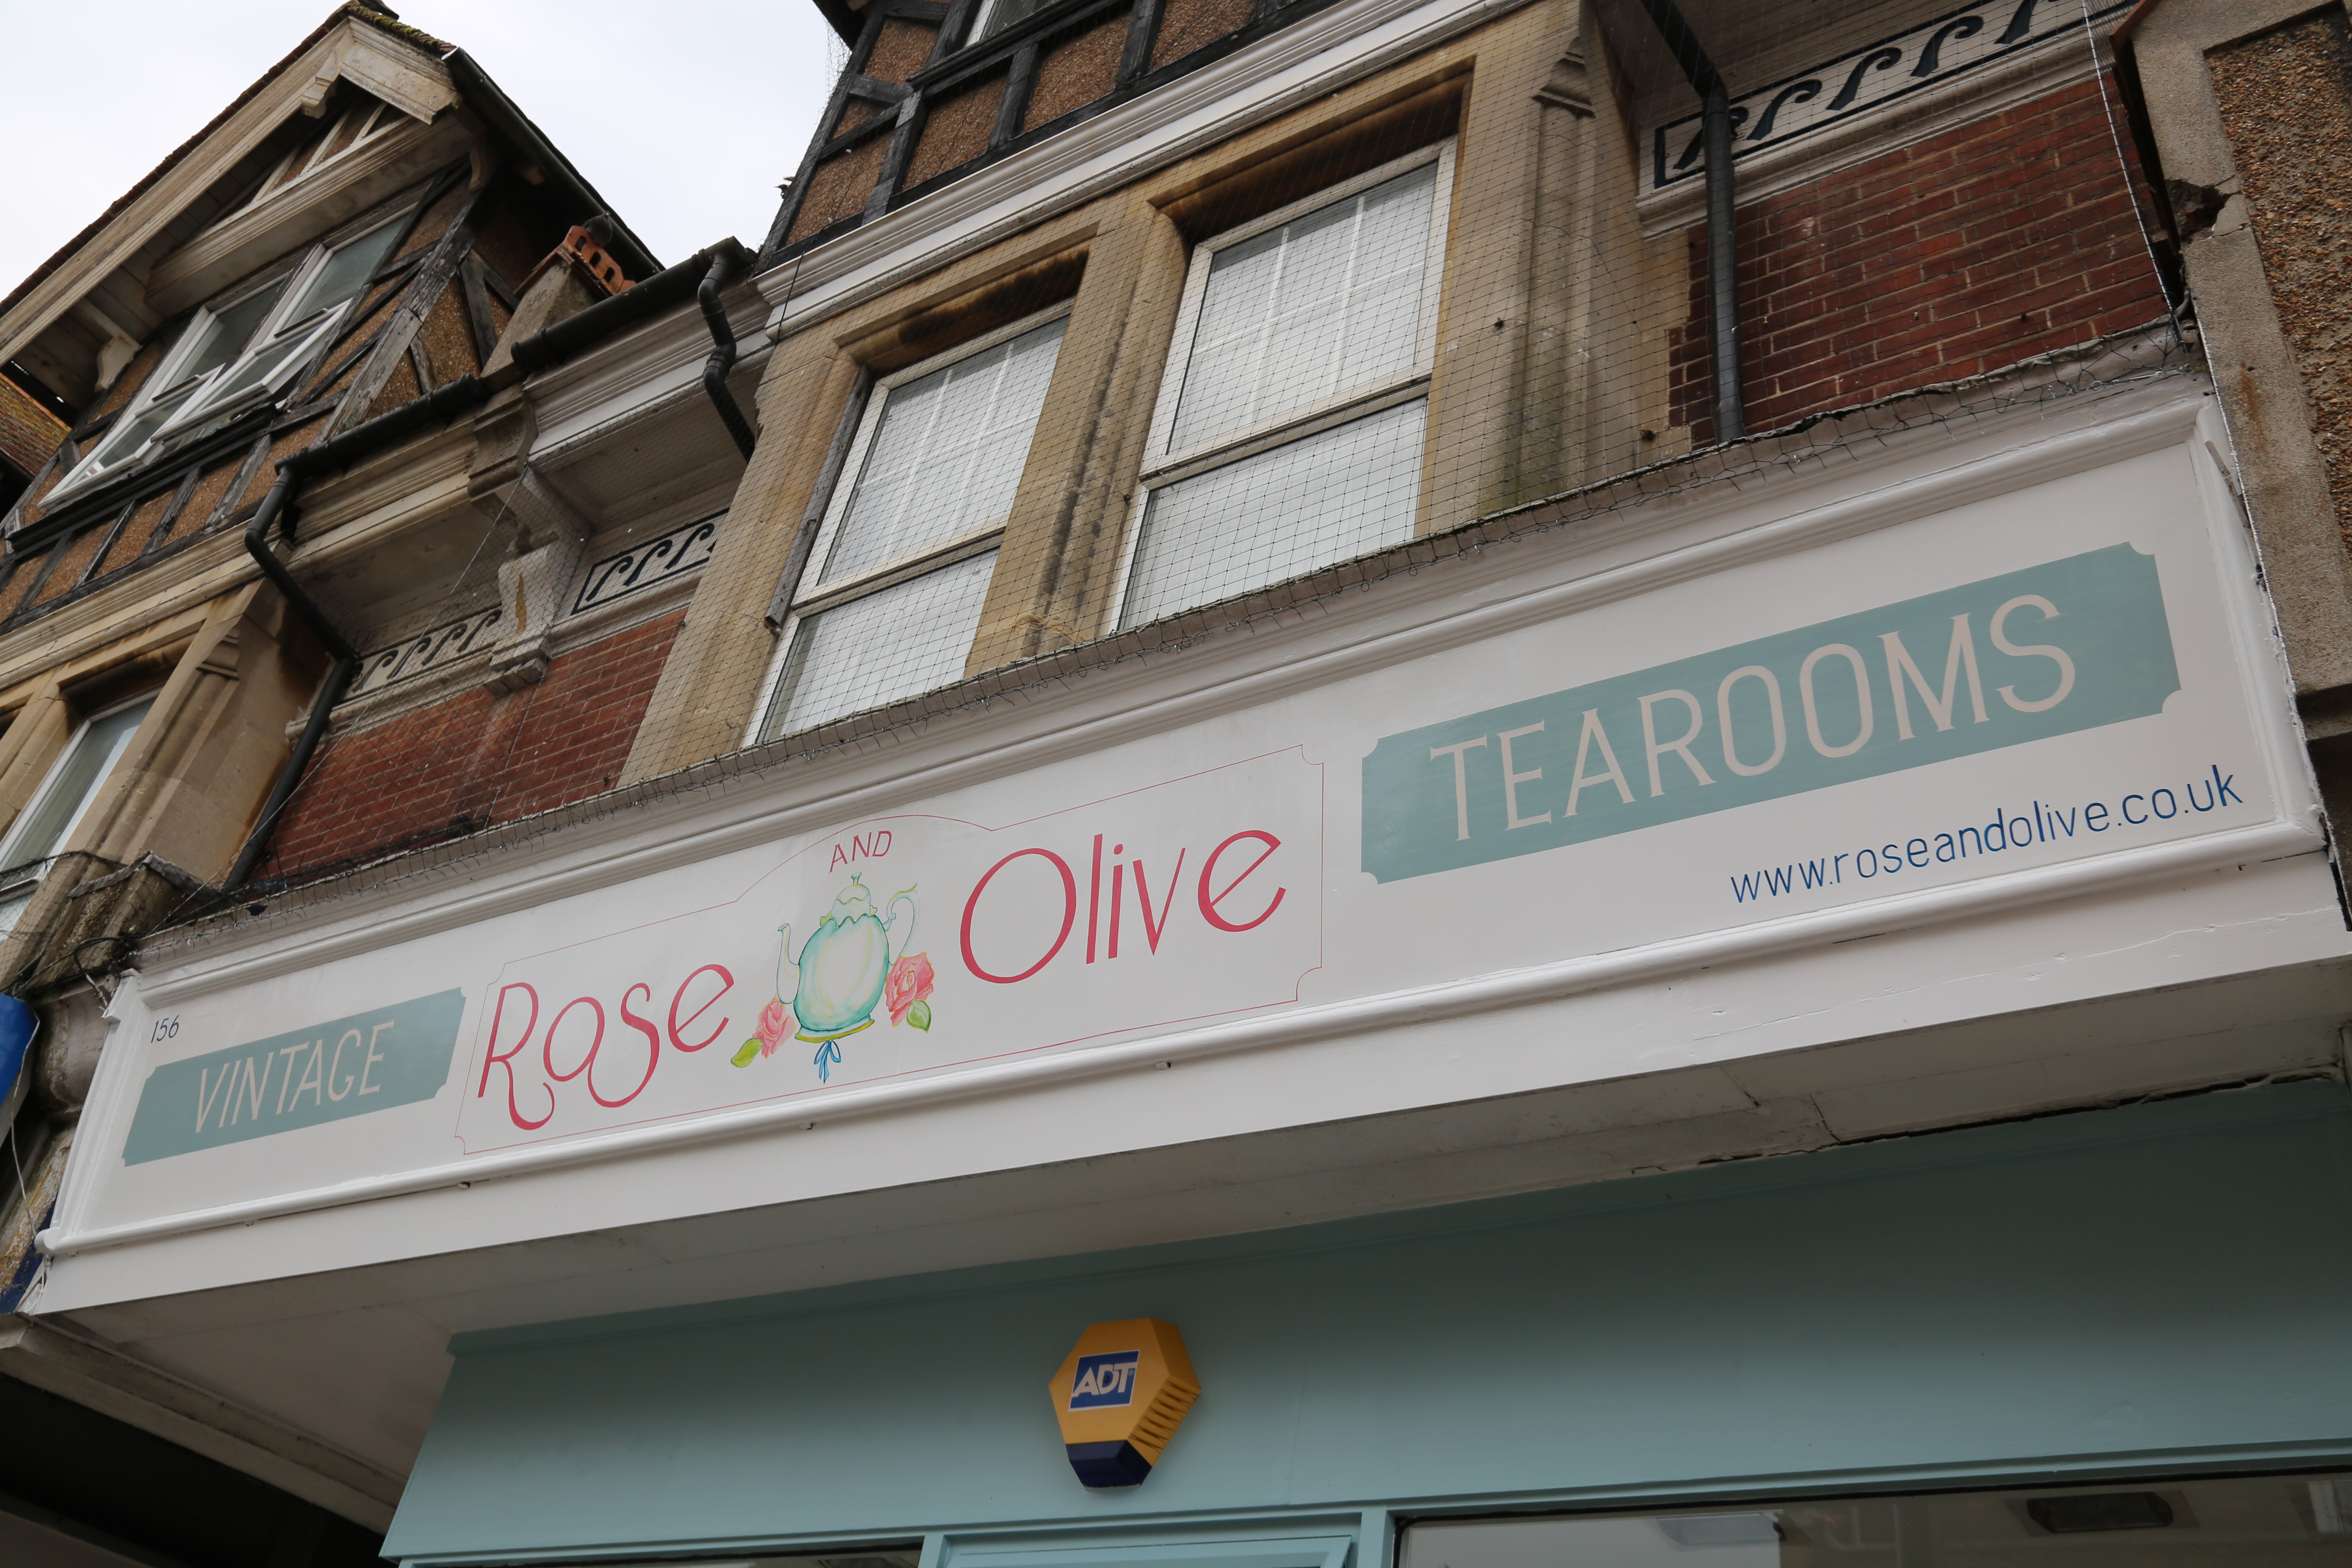 Rose & Olive Tea Rooms